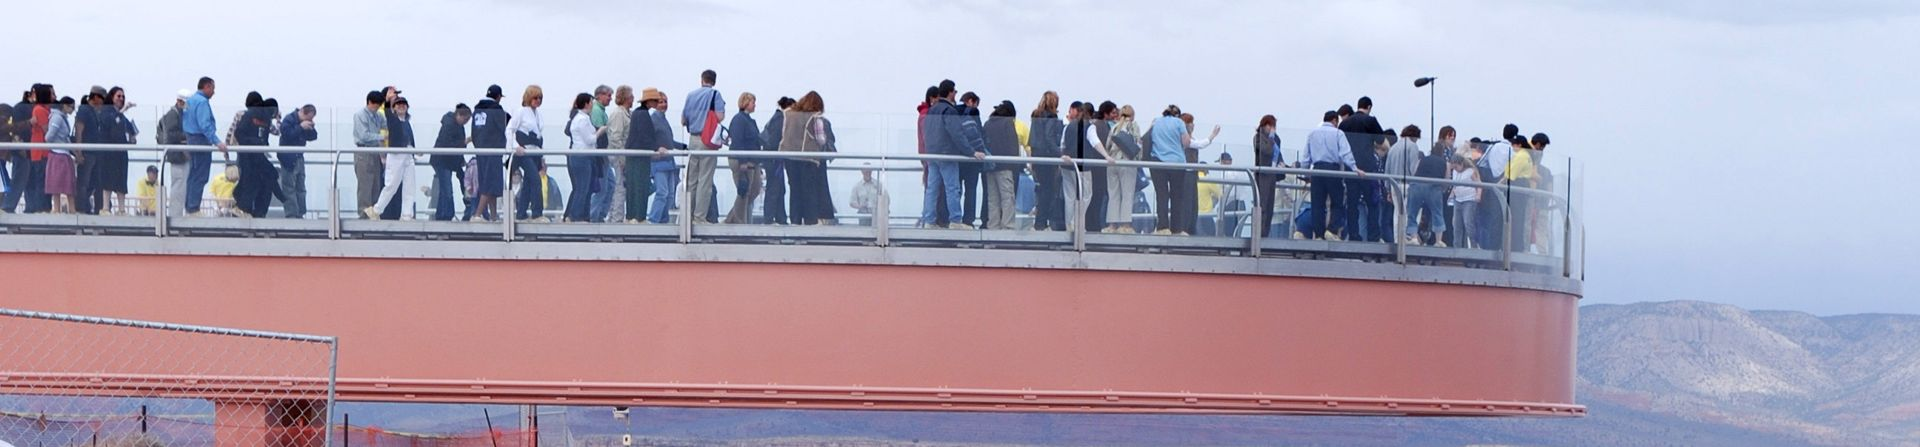 A large group of visitors to the Grand Canyon West Rim stand atop the Skywalk Bridge.